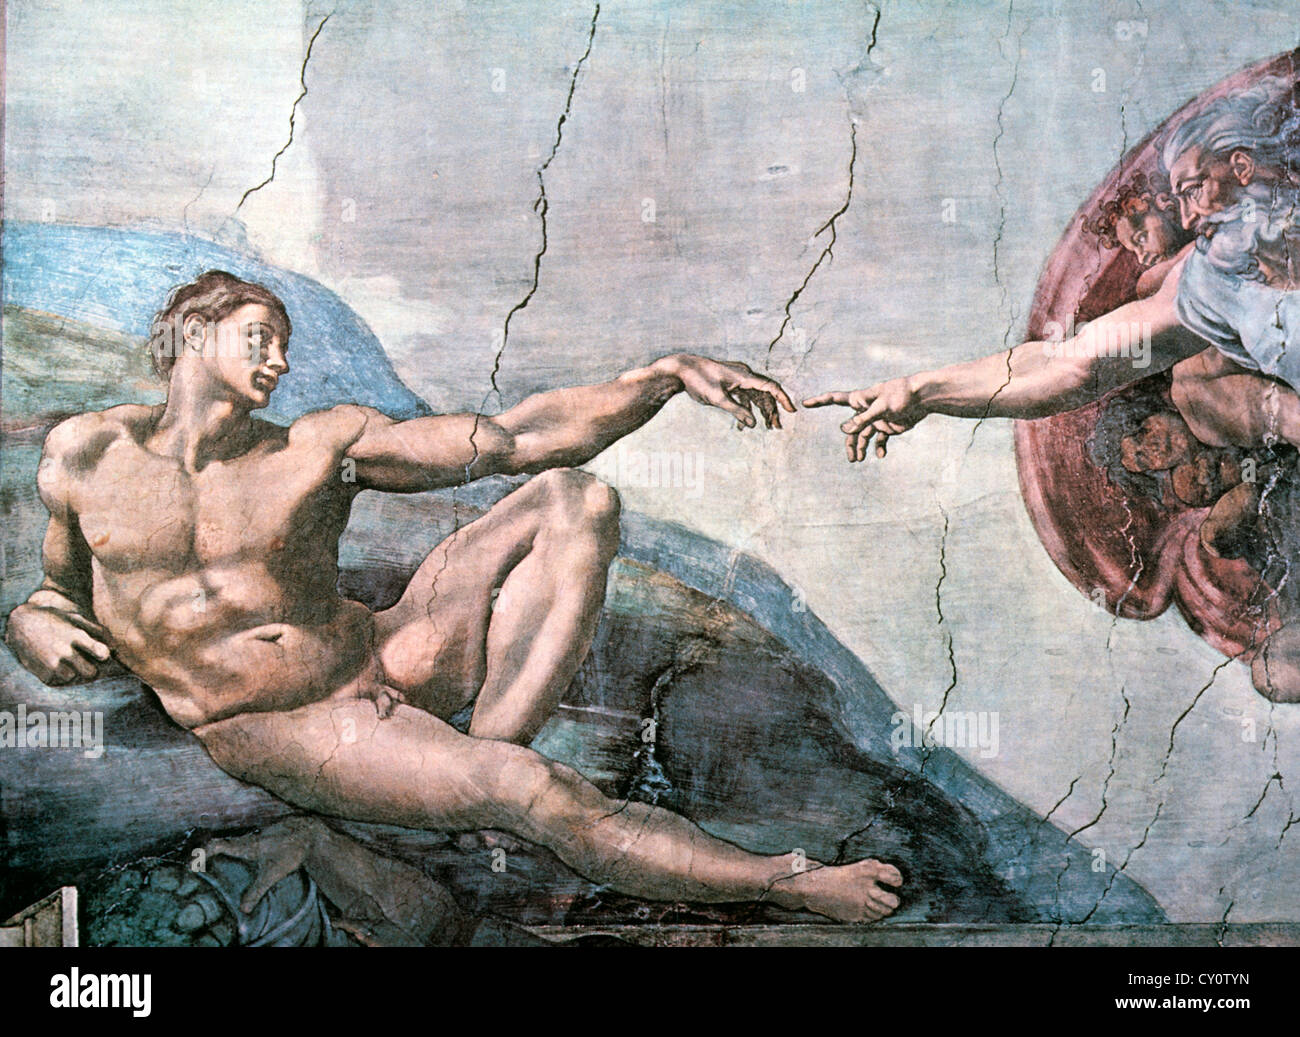 Dieu crée Adam, Chapelle Sixtine, le Vatican, Michaelangelo, fresque, 1508-11 Photo Stock